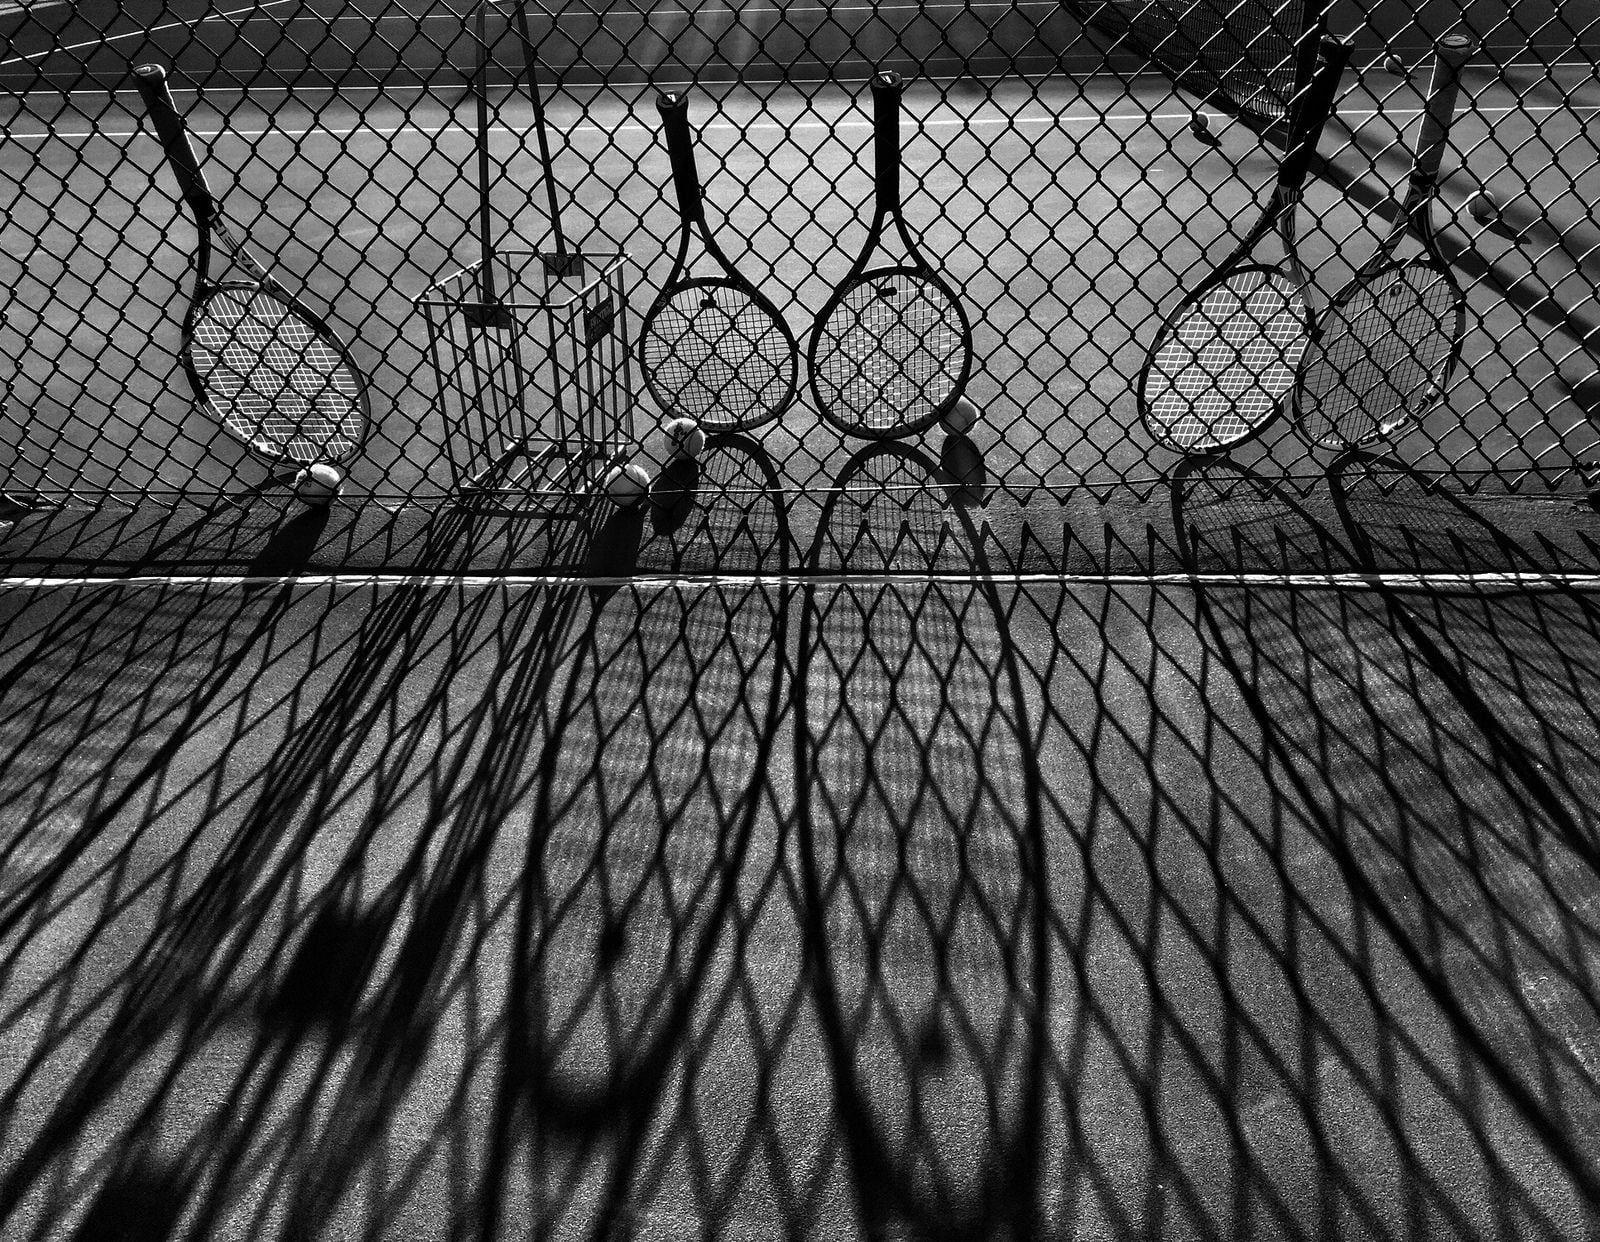 Best 46 Tennis Racquet Wallpaper On HipWallpaper